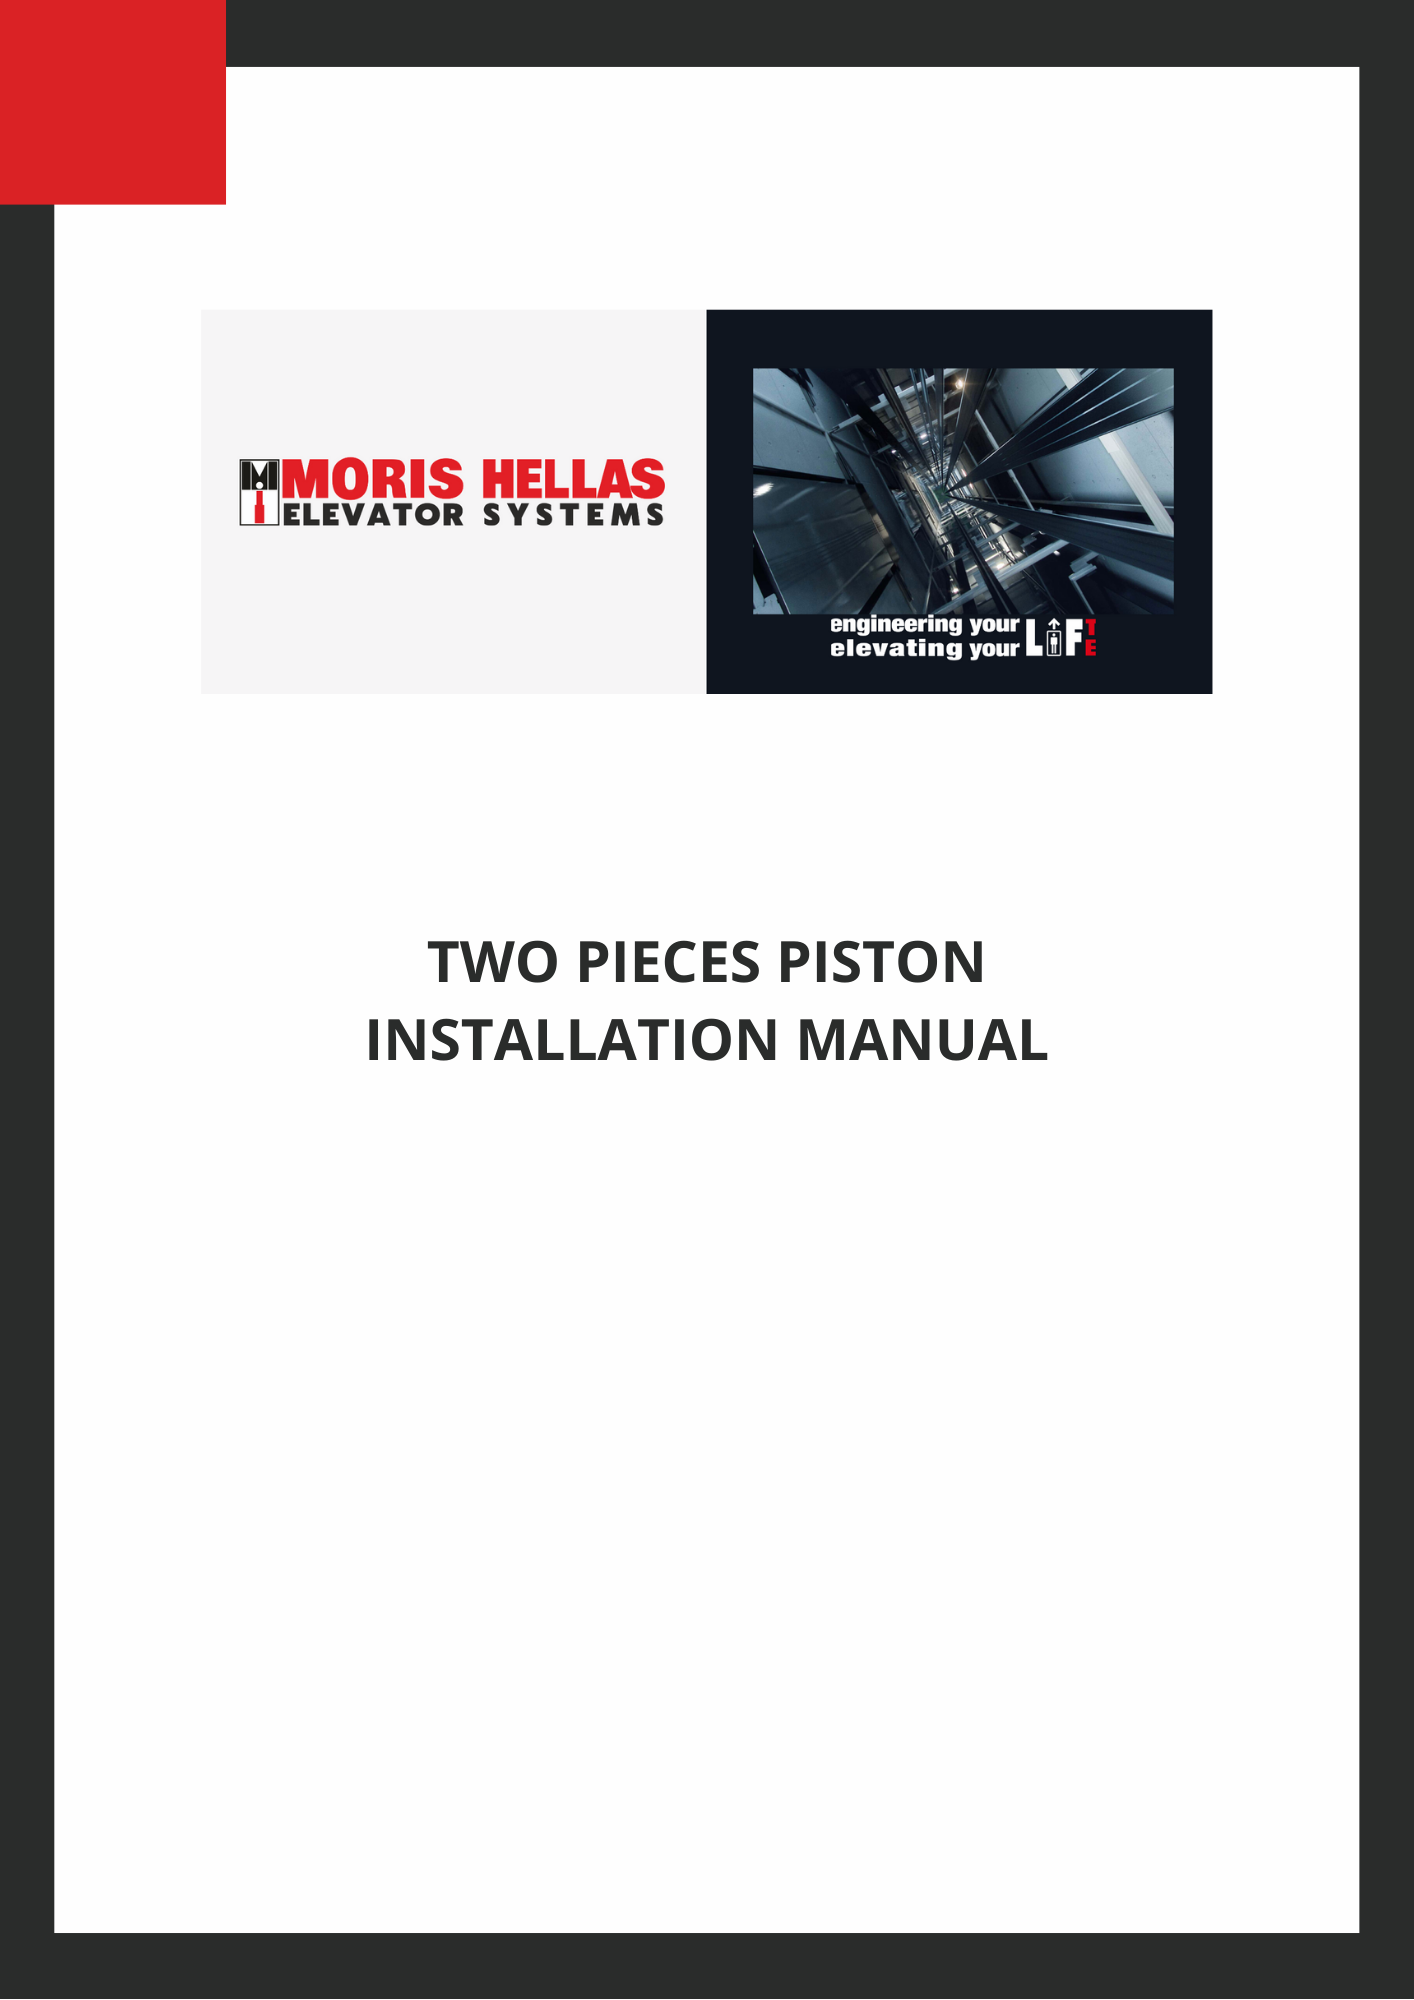 TWO PIECES PISTON INSTALLATION MANUAL